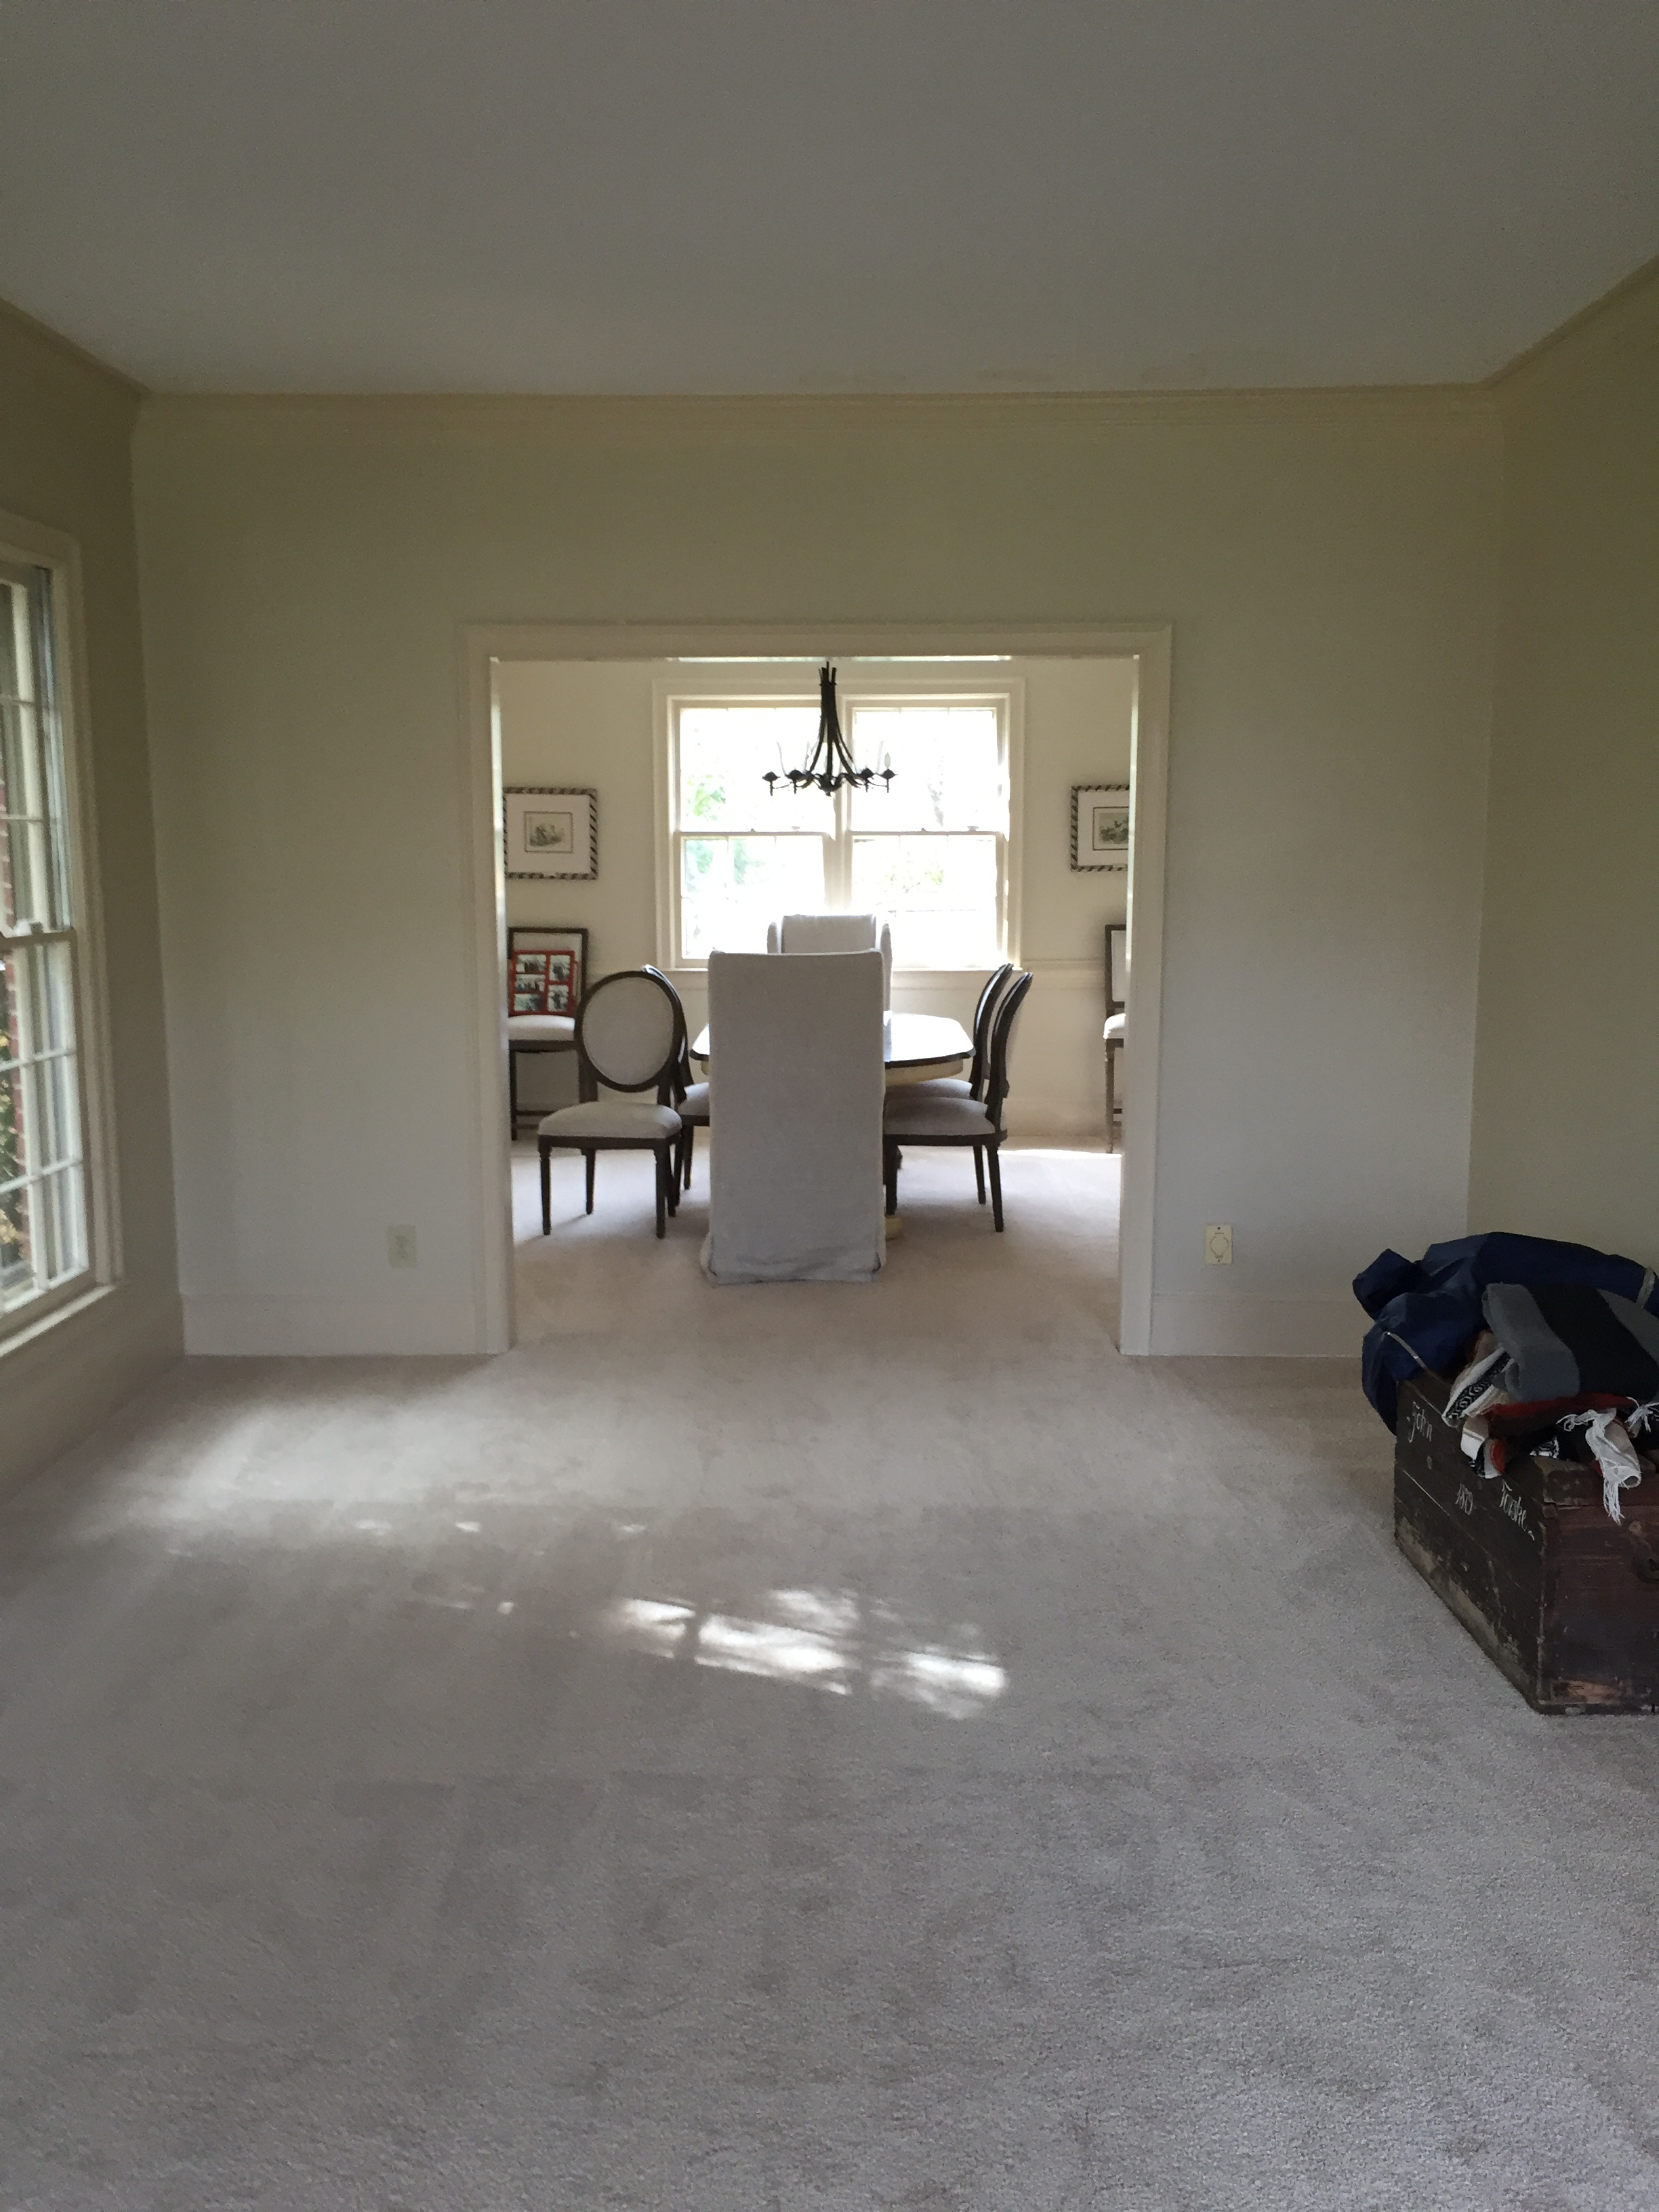 Giant formal living room, which passes into dining room... essentially one long room